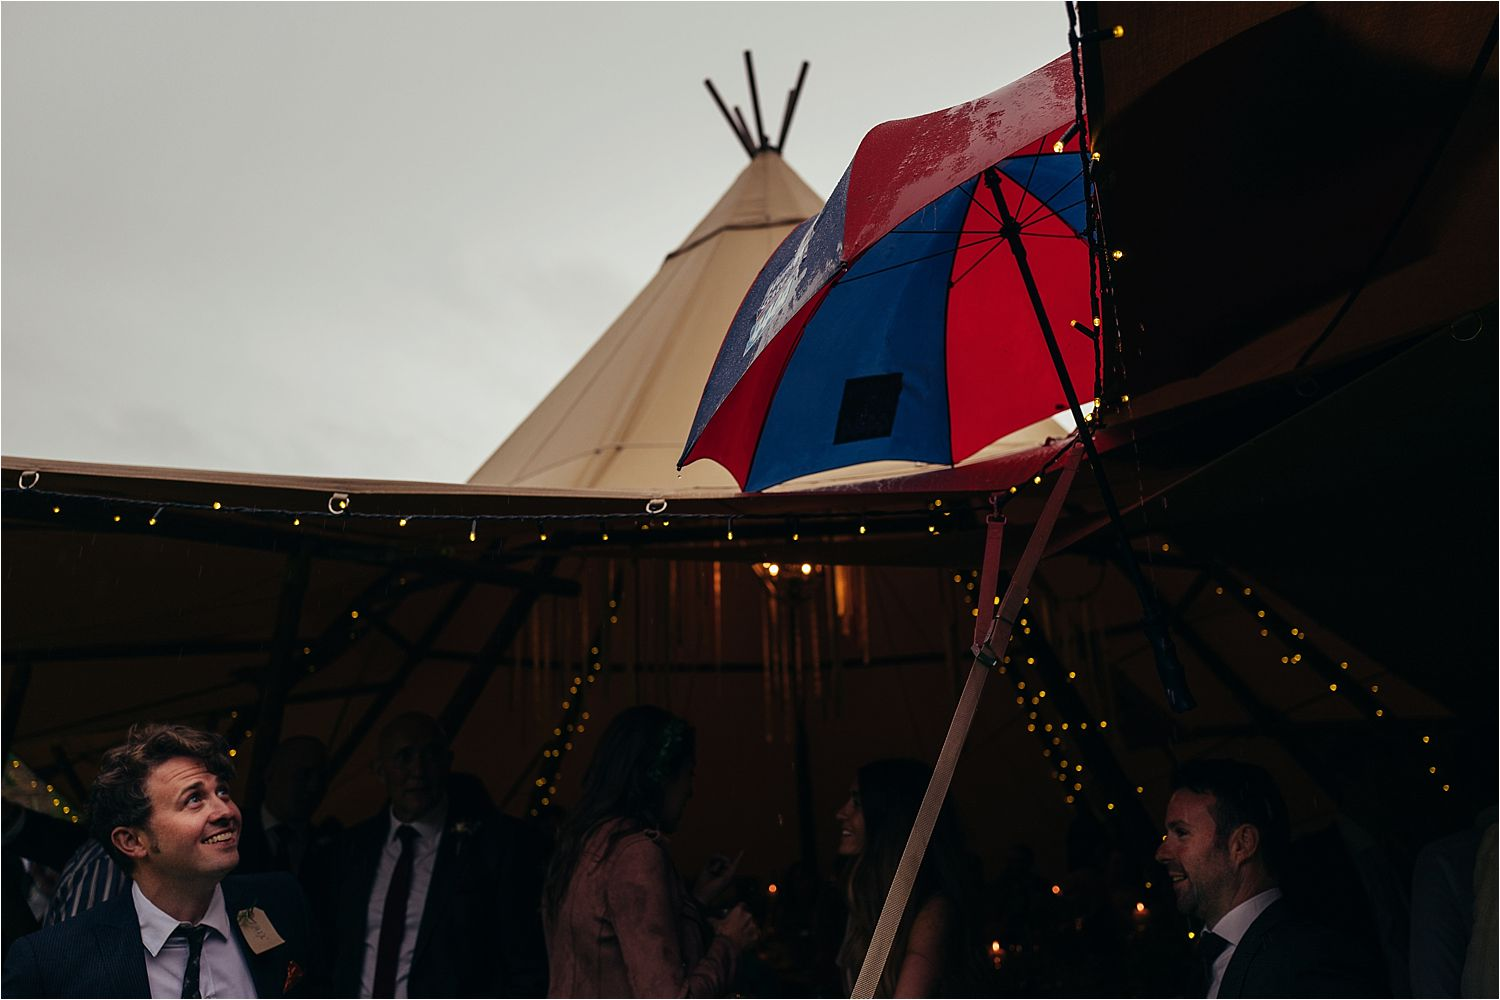 Umbrella up at tipi wedding in Bedfordshire